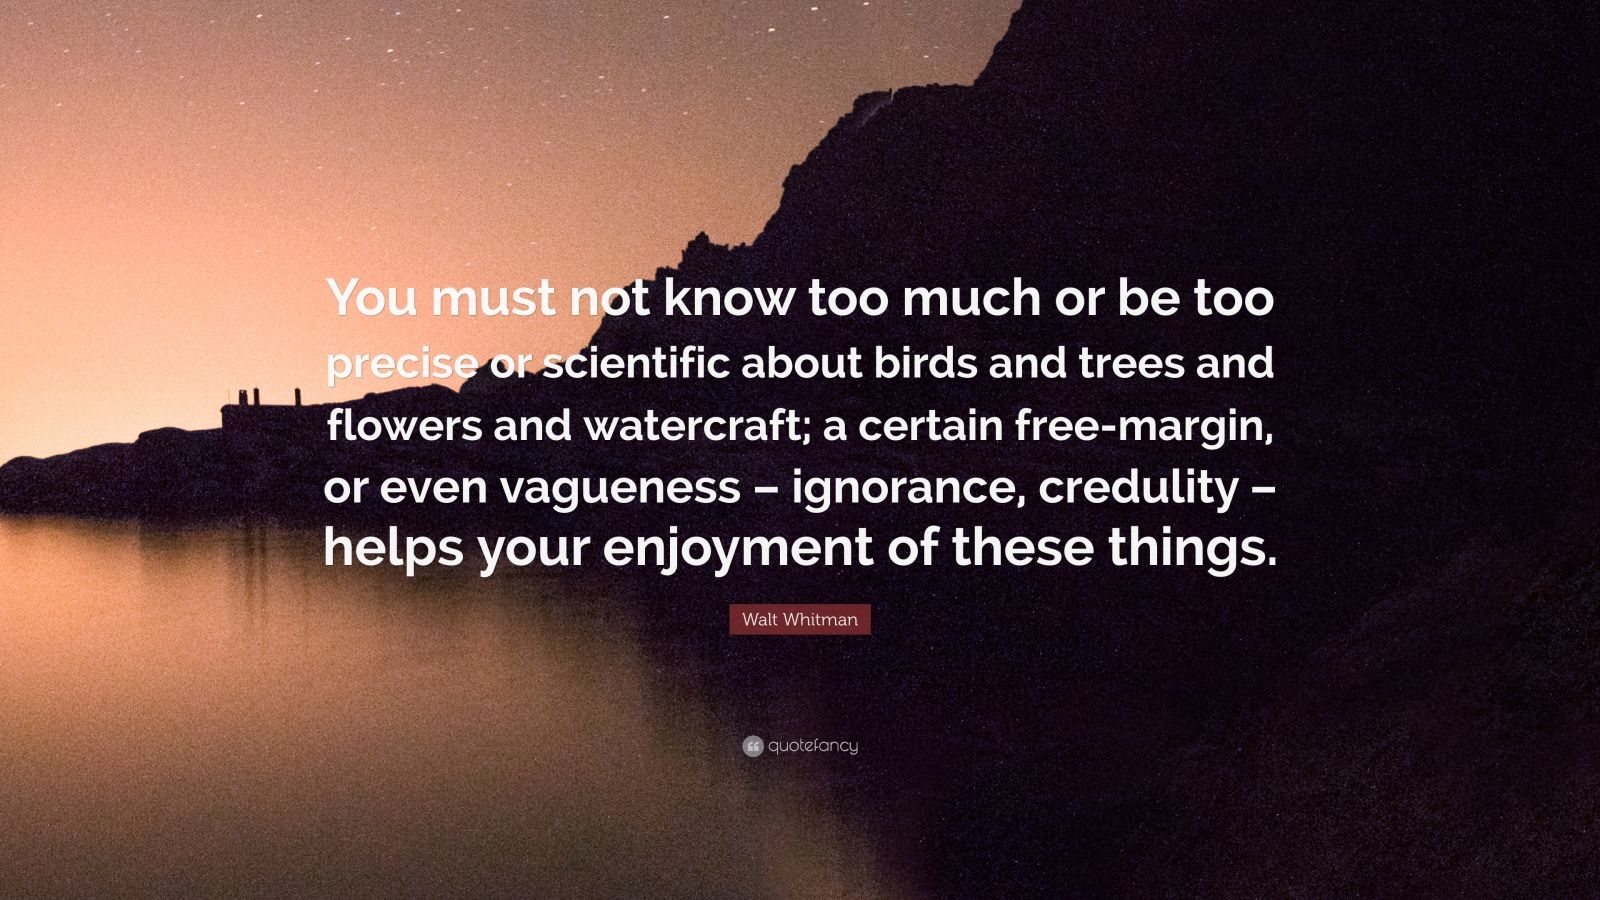 """Walt Whitman Quote: """"You must not know too much or be too precise or scientific about birds and trees and flowers and watercraft; a certain free-margin, or even vagueness – ignorance, credulity – helps your enjoyment of these things."""""""